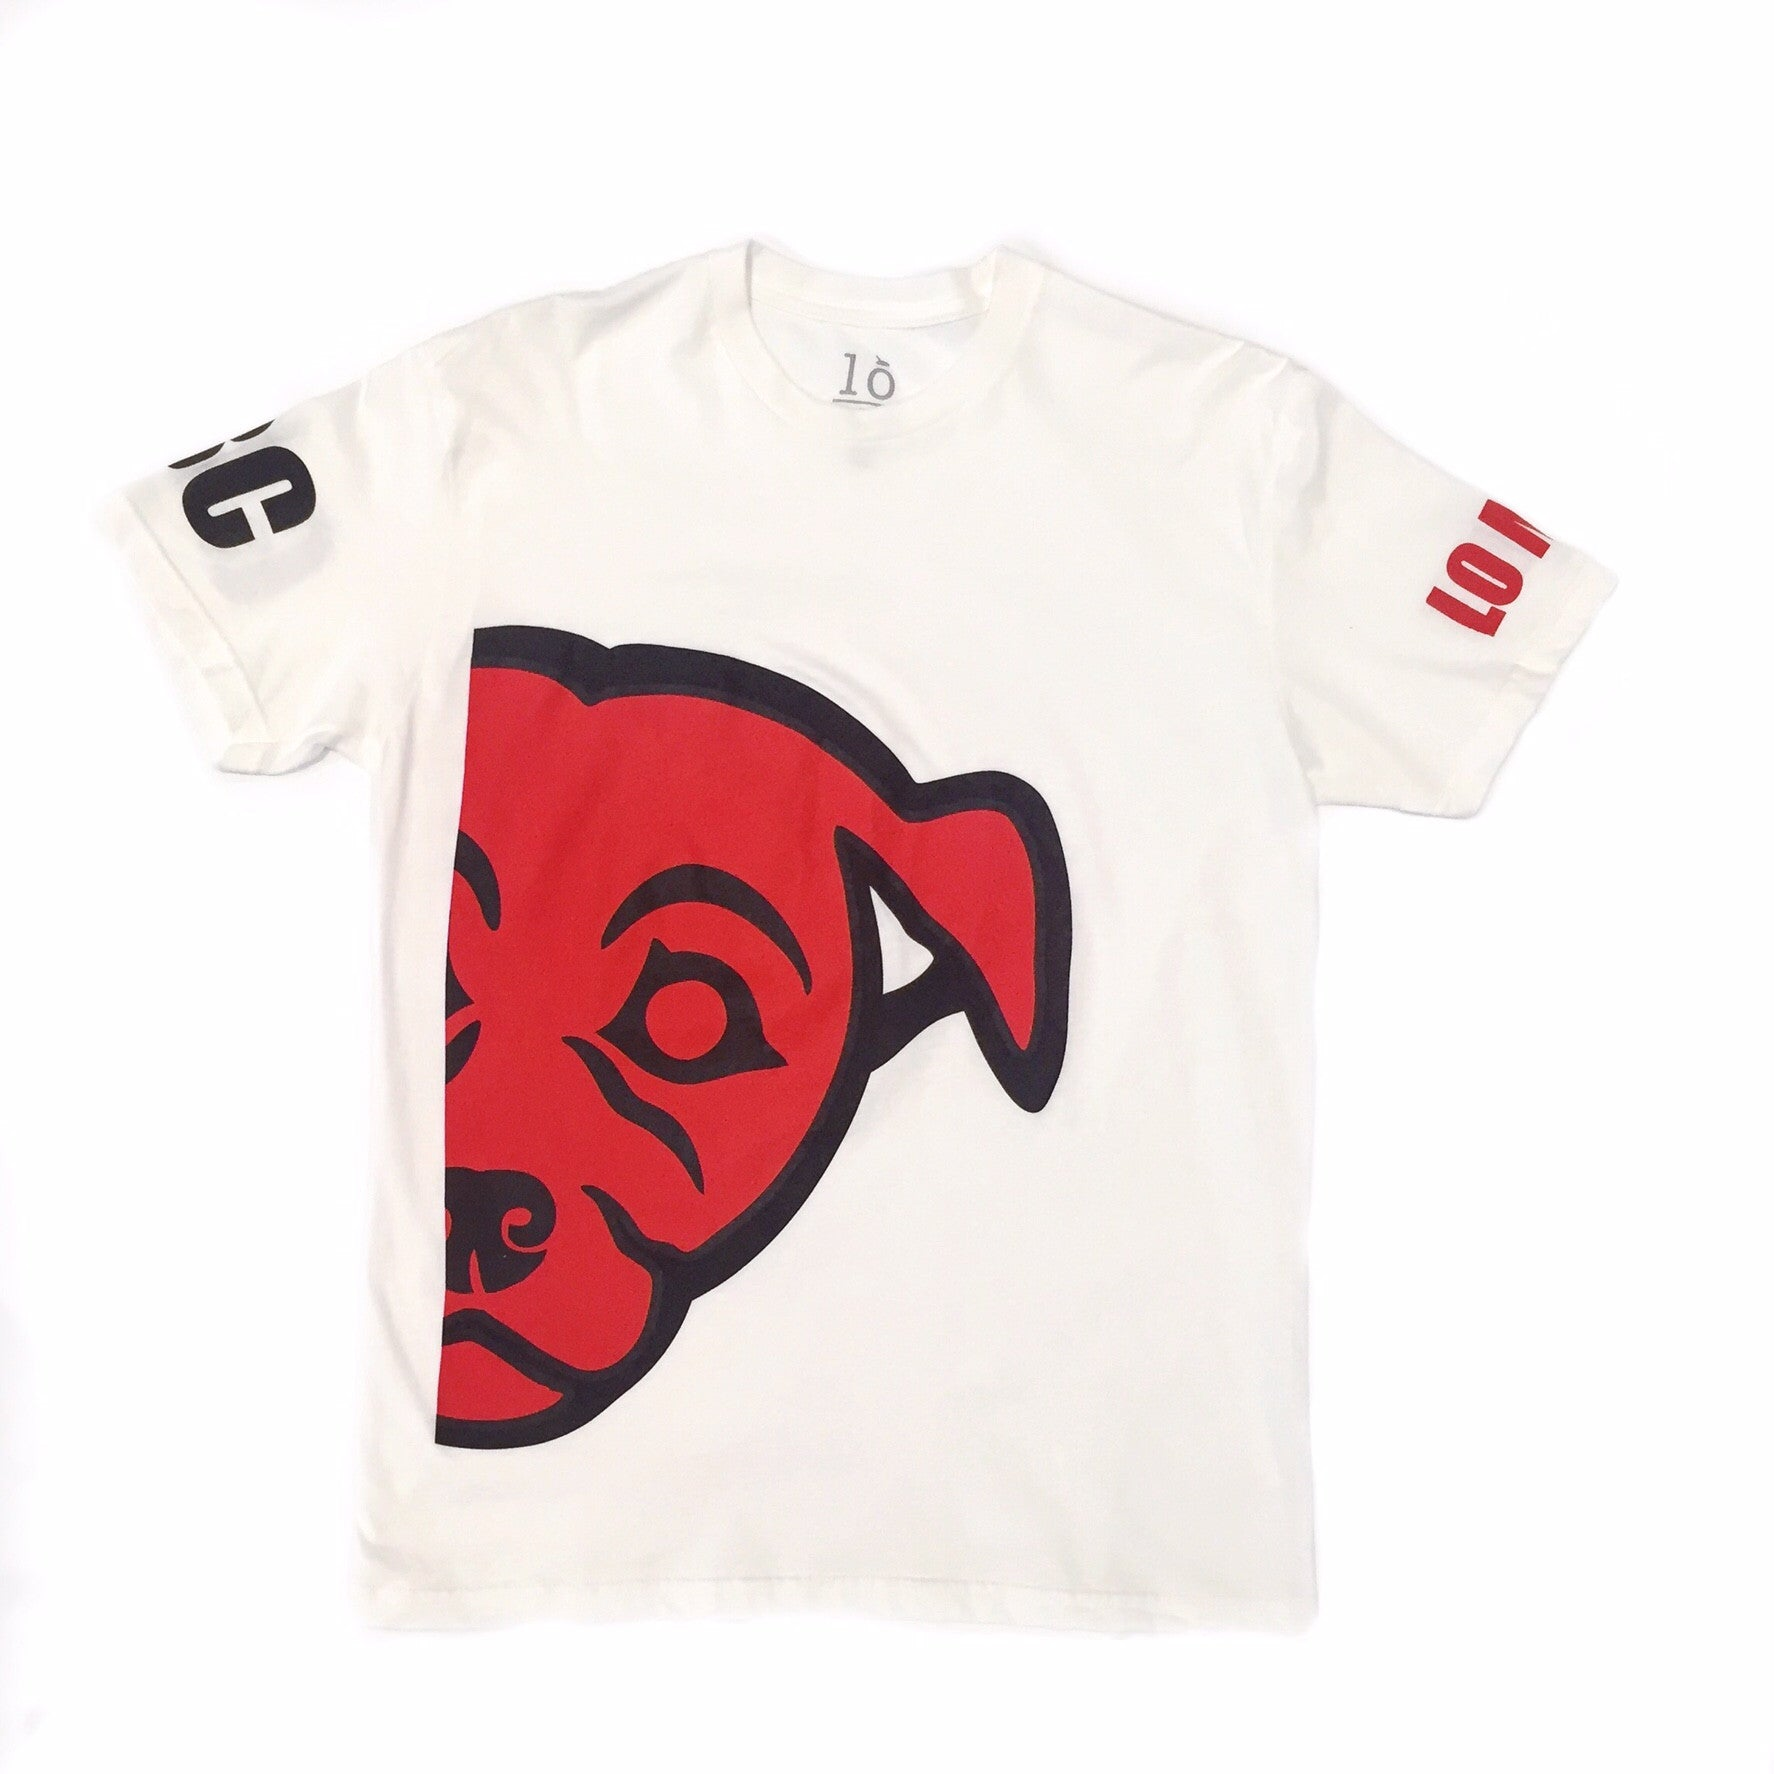 Lo Mein Collection/GBC Saki By My Side Collabo Tee - White/Red/Black